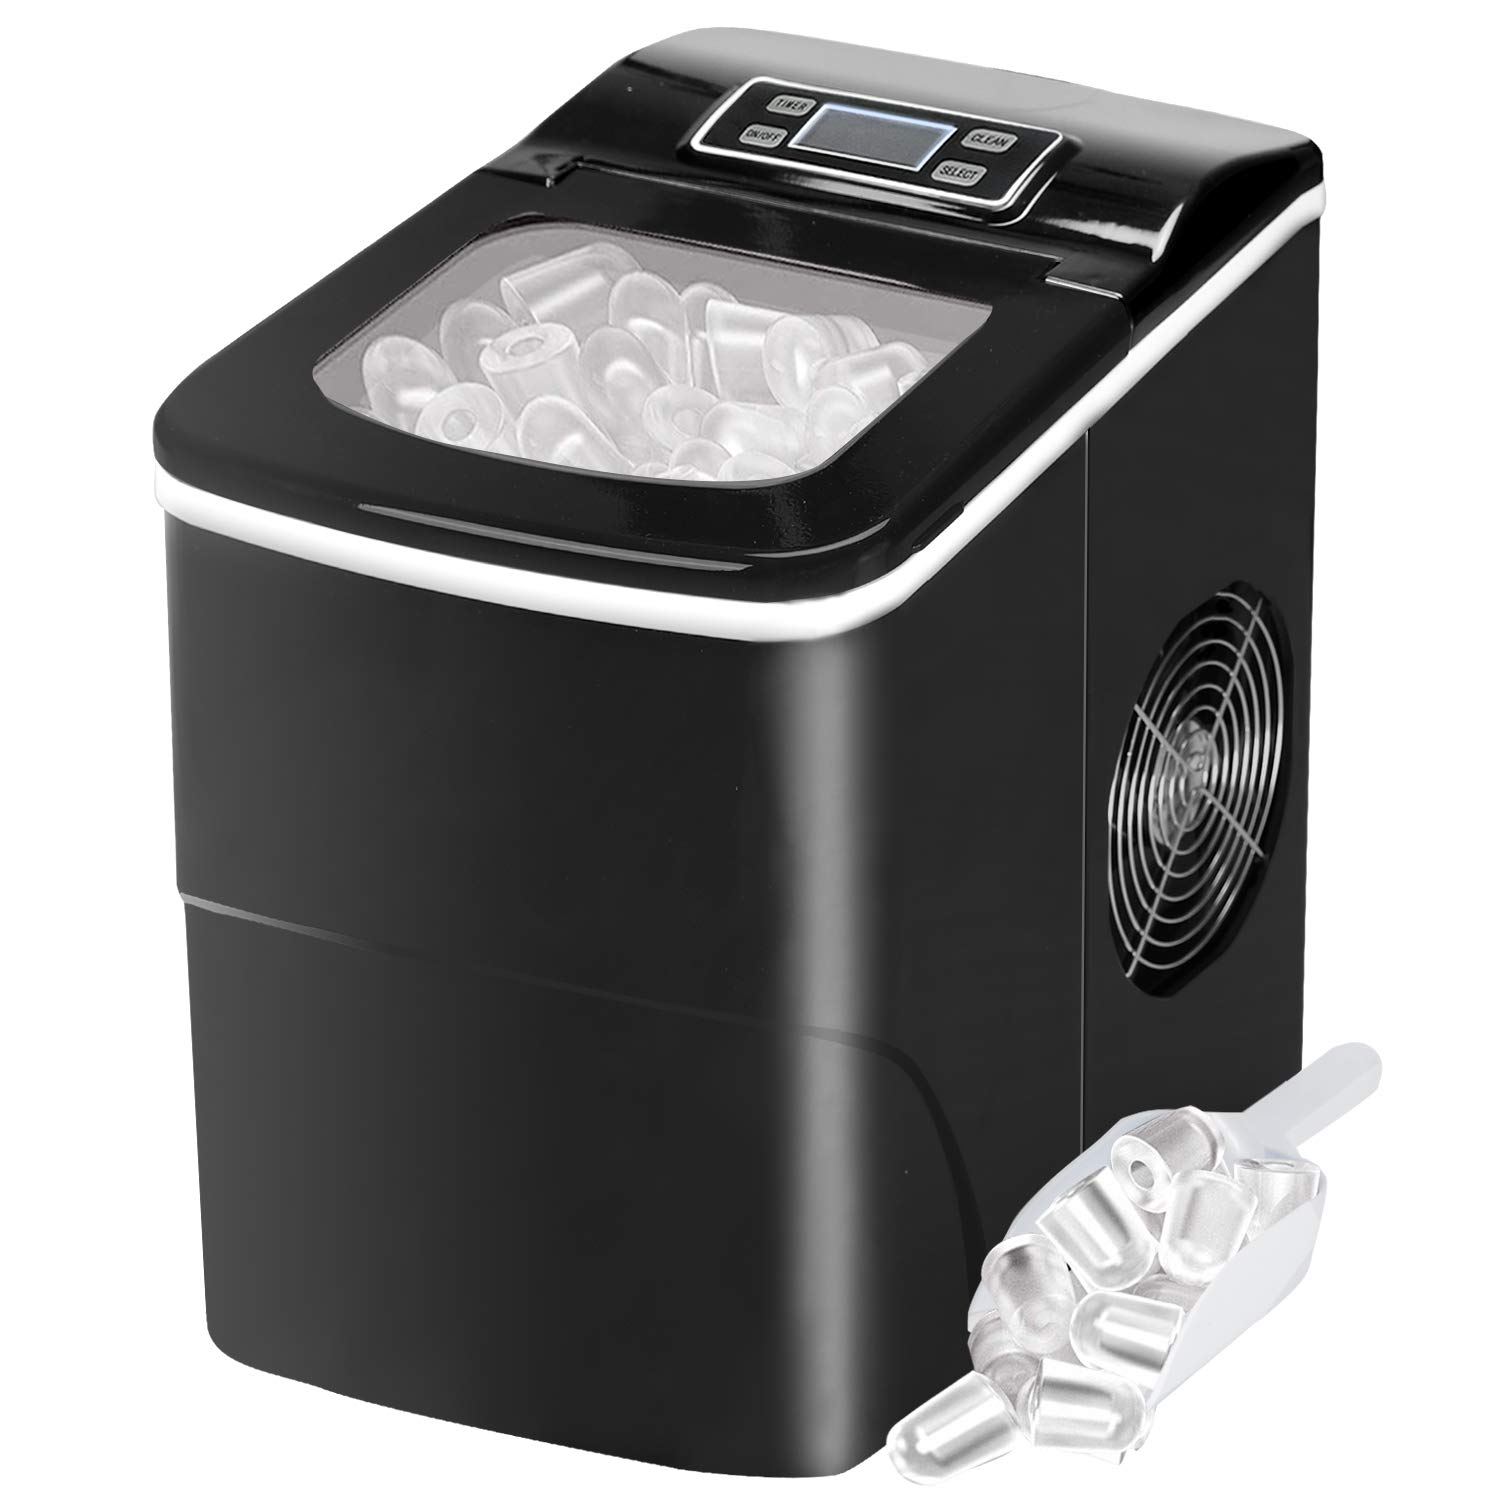 alpha-ene.co.jp Perfe for Home/Office/Bar 2 Qt Countertop Ice ...